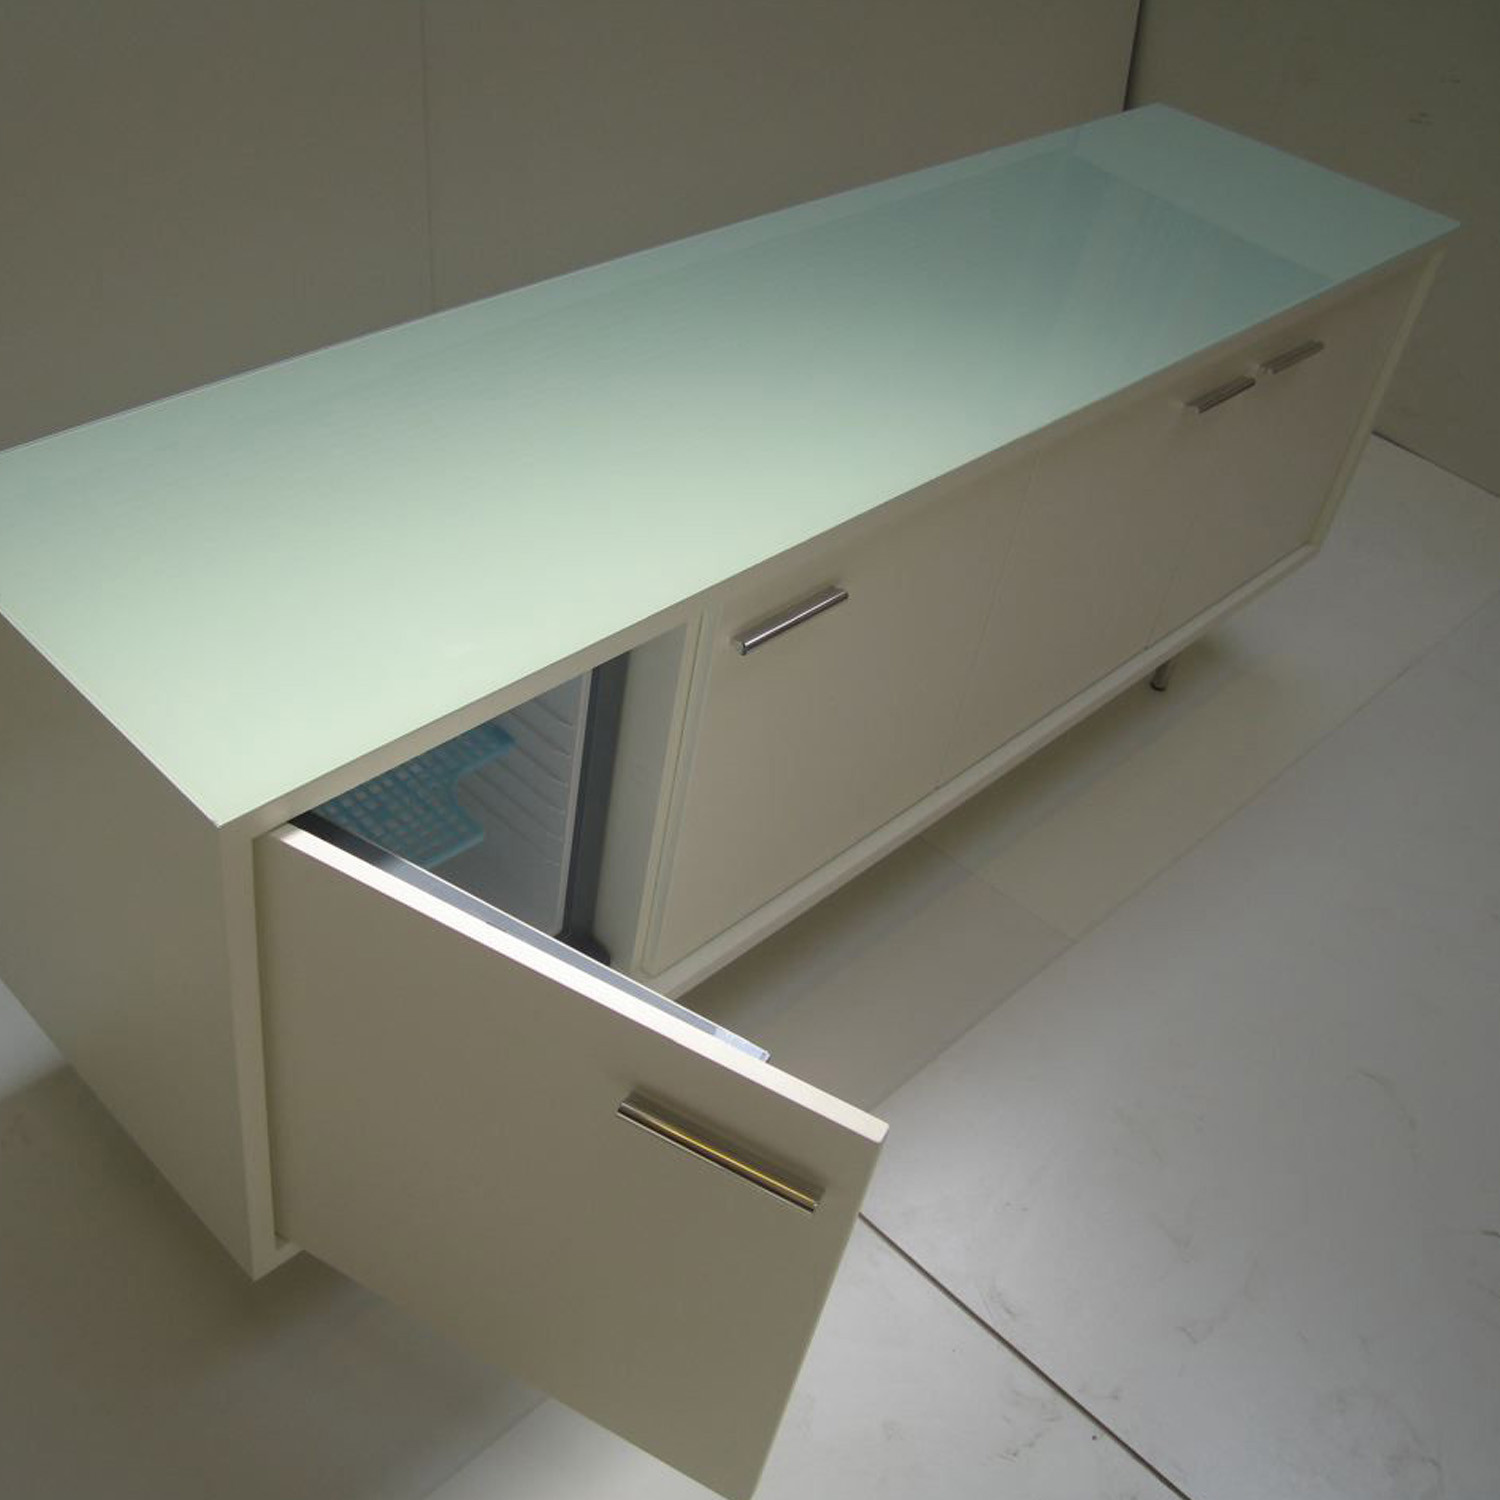 Series 3 Credenza - Meeting Room Storage